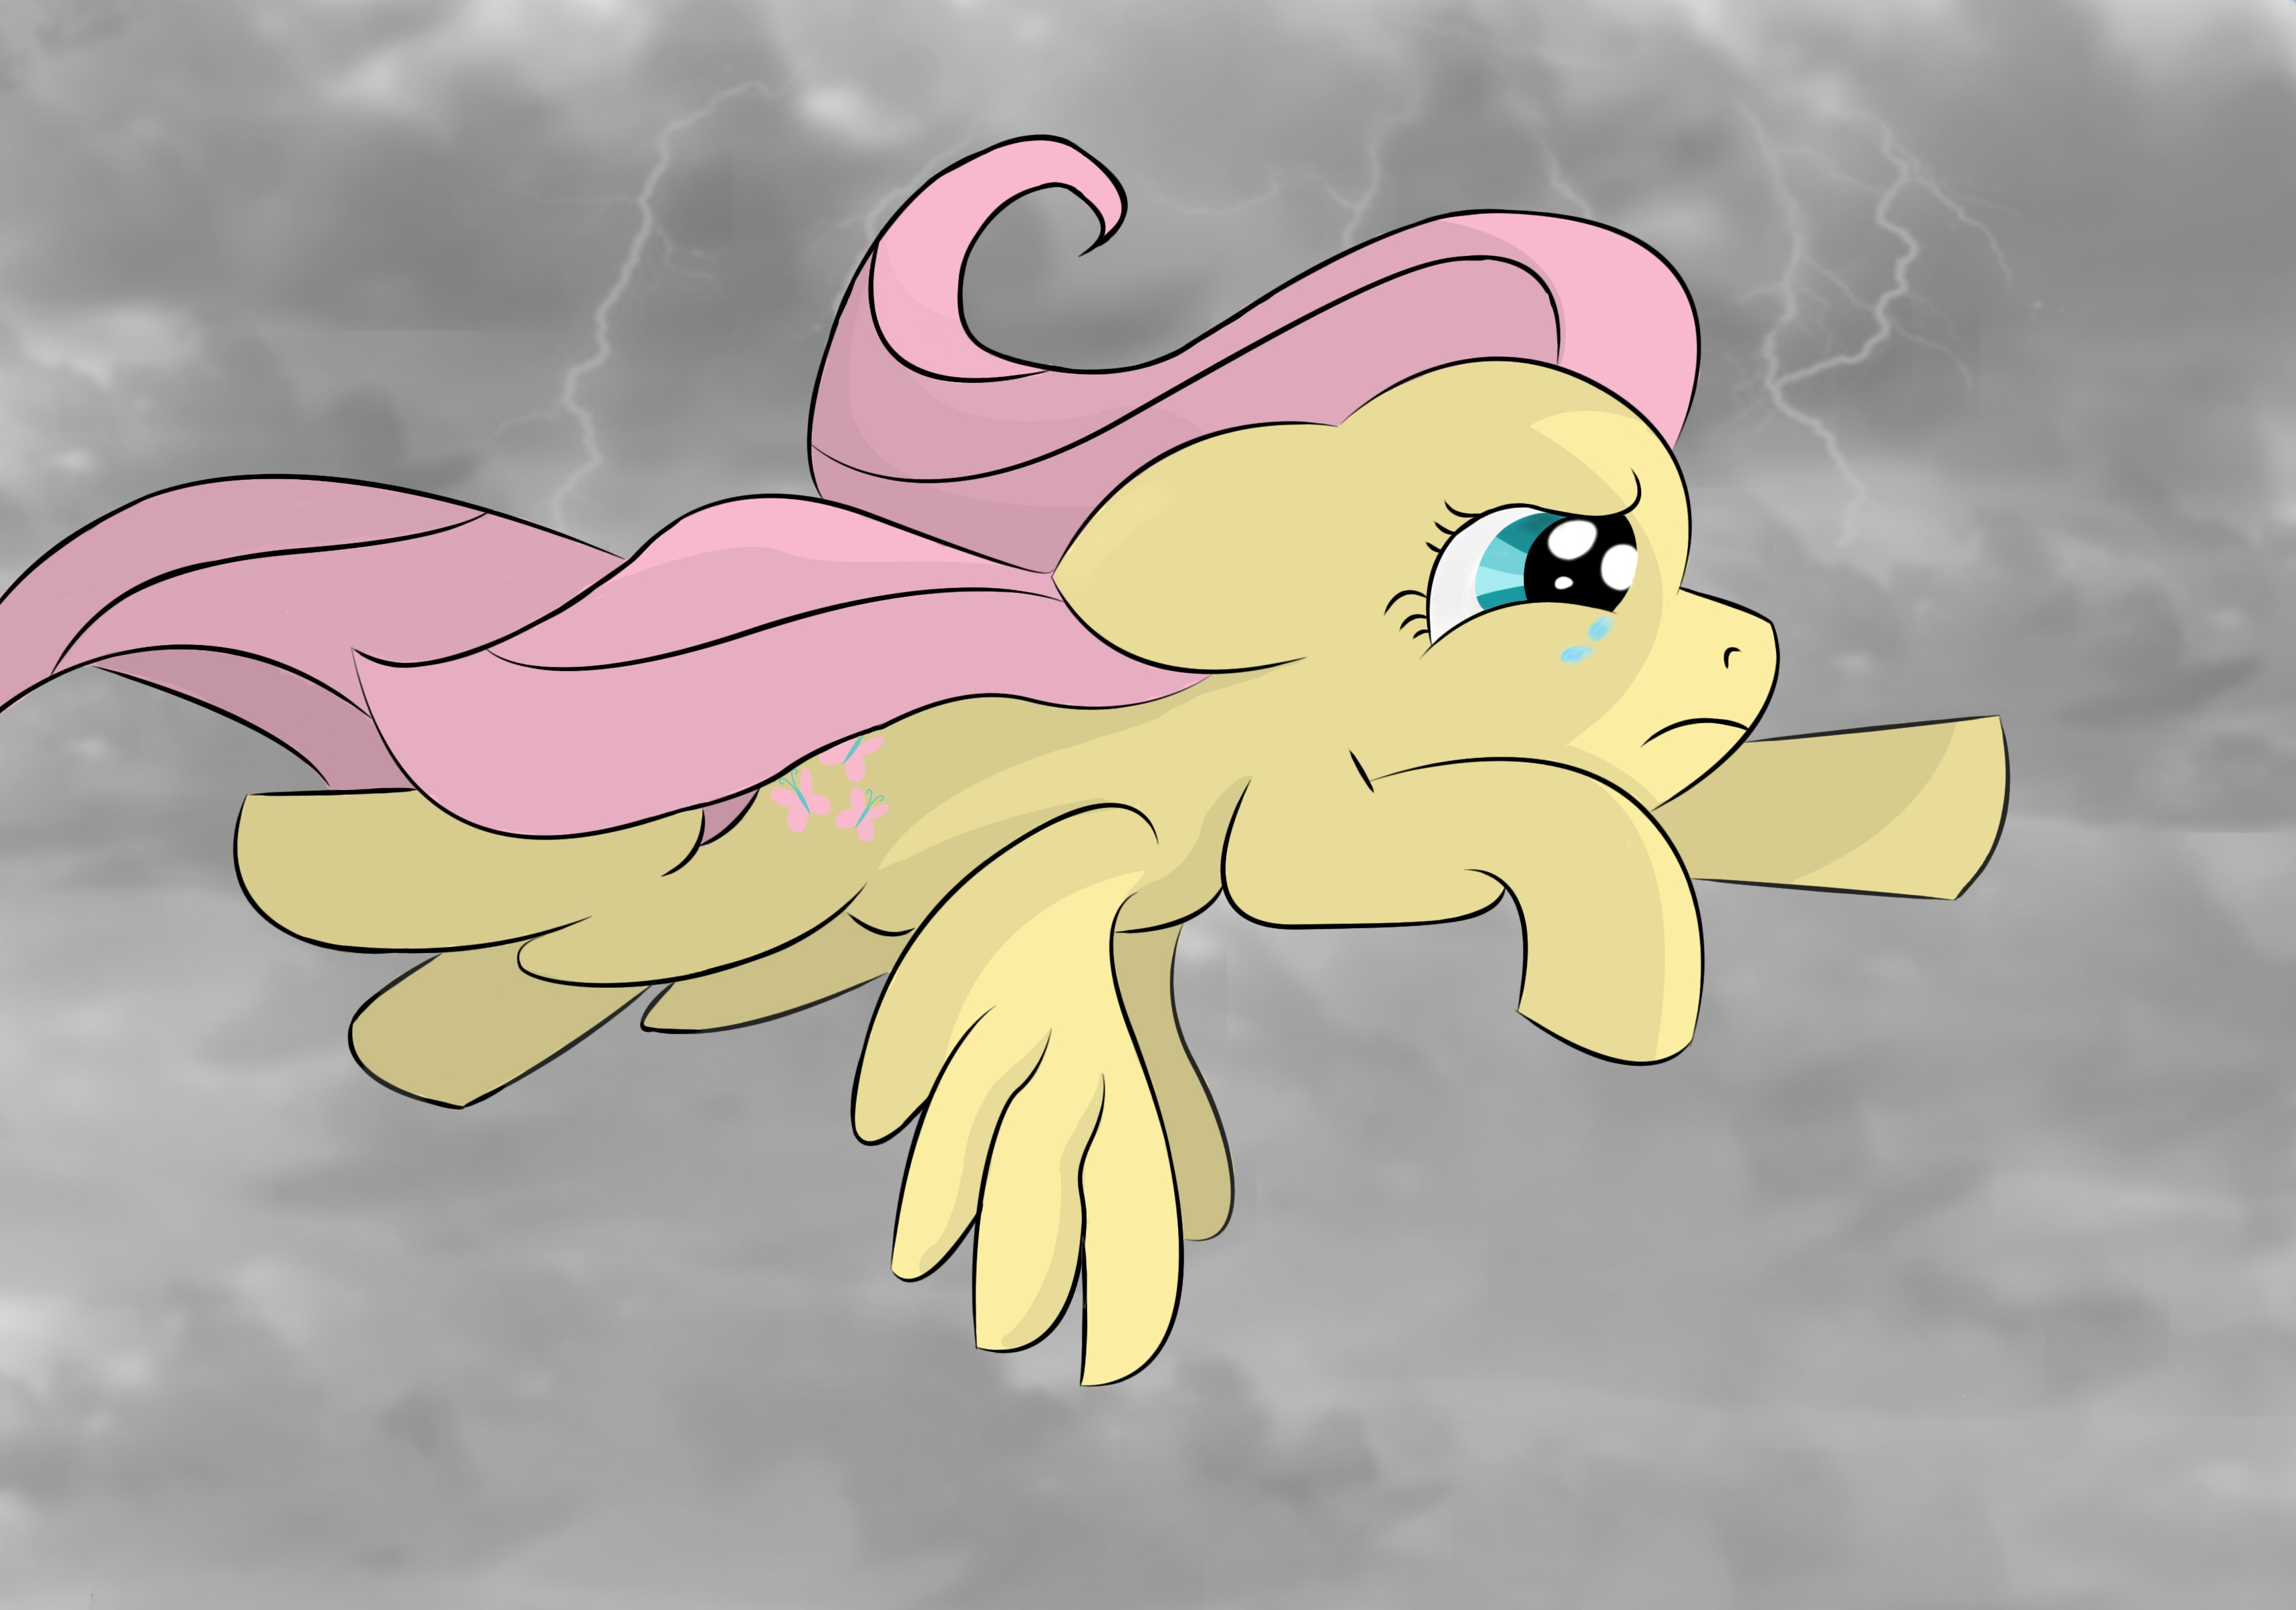 Derpy also known as Muffins and Ditzy Doo is a female Pegasus pony who was given the name Derpy Hooves by the shows internet following due to her crosseyed